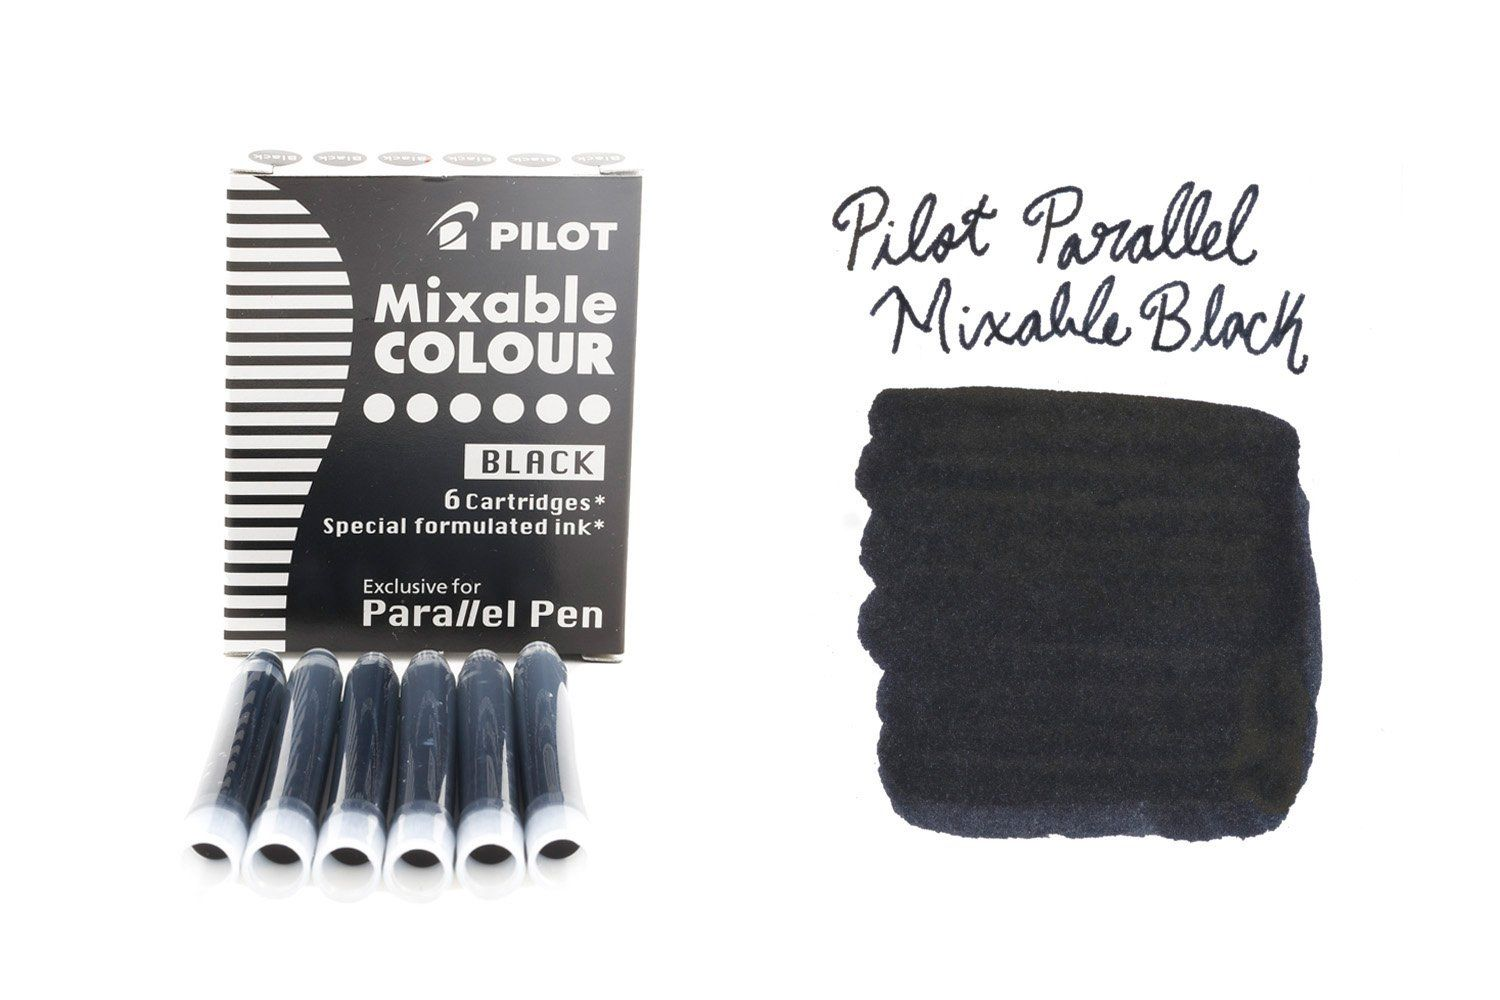 Use these ink cartridges in a Pilot Parallel fountain pen. When used with a second pen, you can achieve gradated color variation with these mixable inks. This box includes 6 black fountain pen ink cartridges.